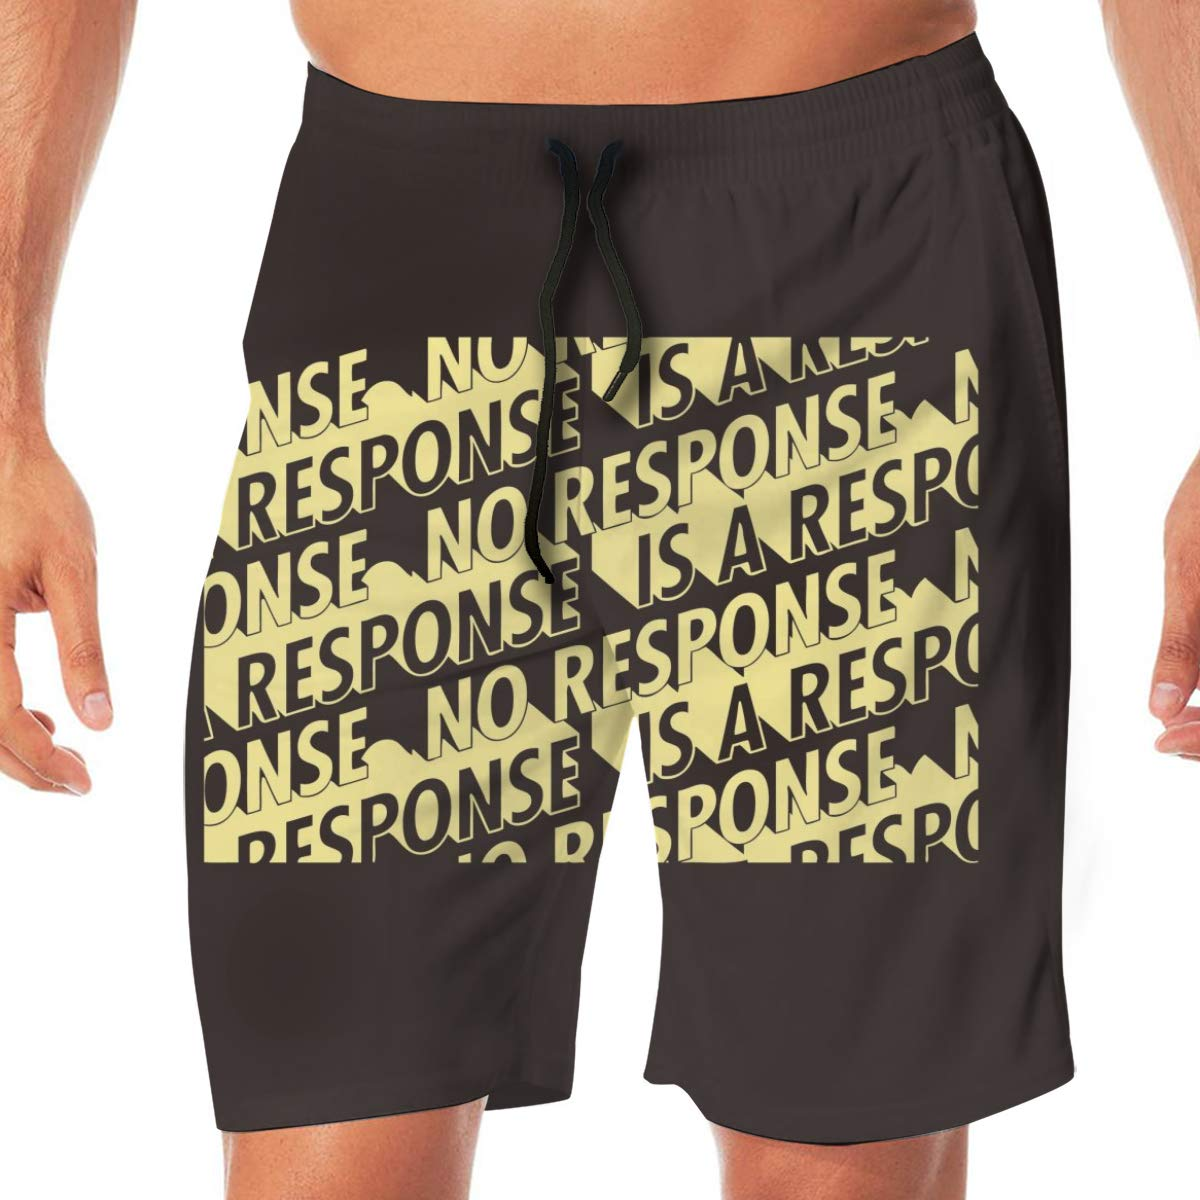 Mens Swim Trunks Quick Dry No Response Poster Letters Beach Board Shorts Swimming Short with Pockets